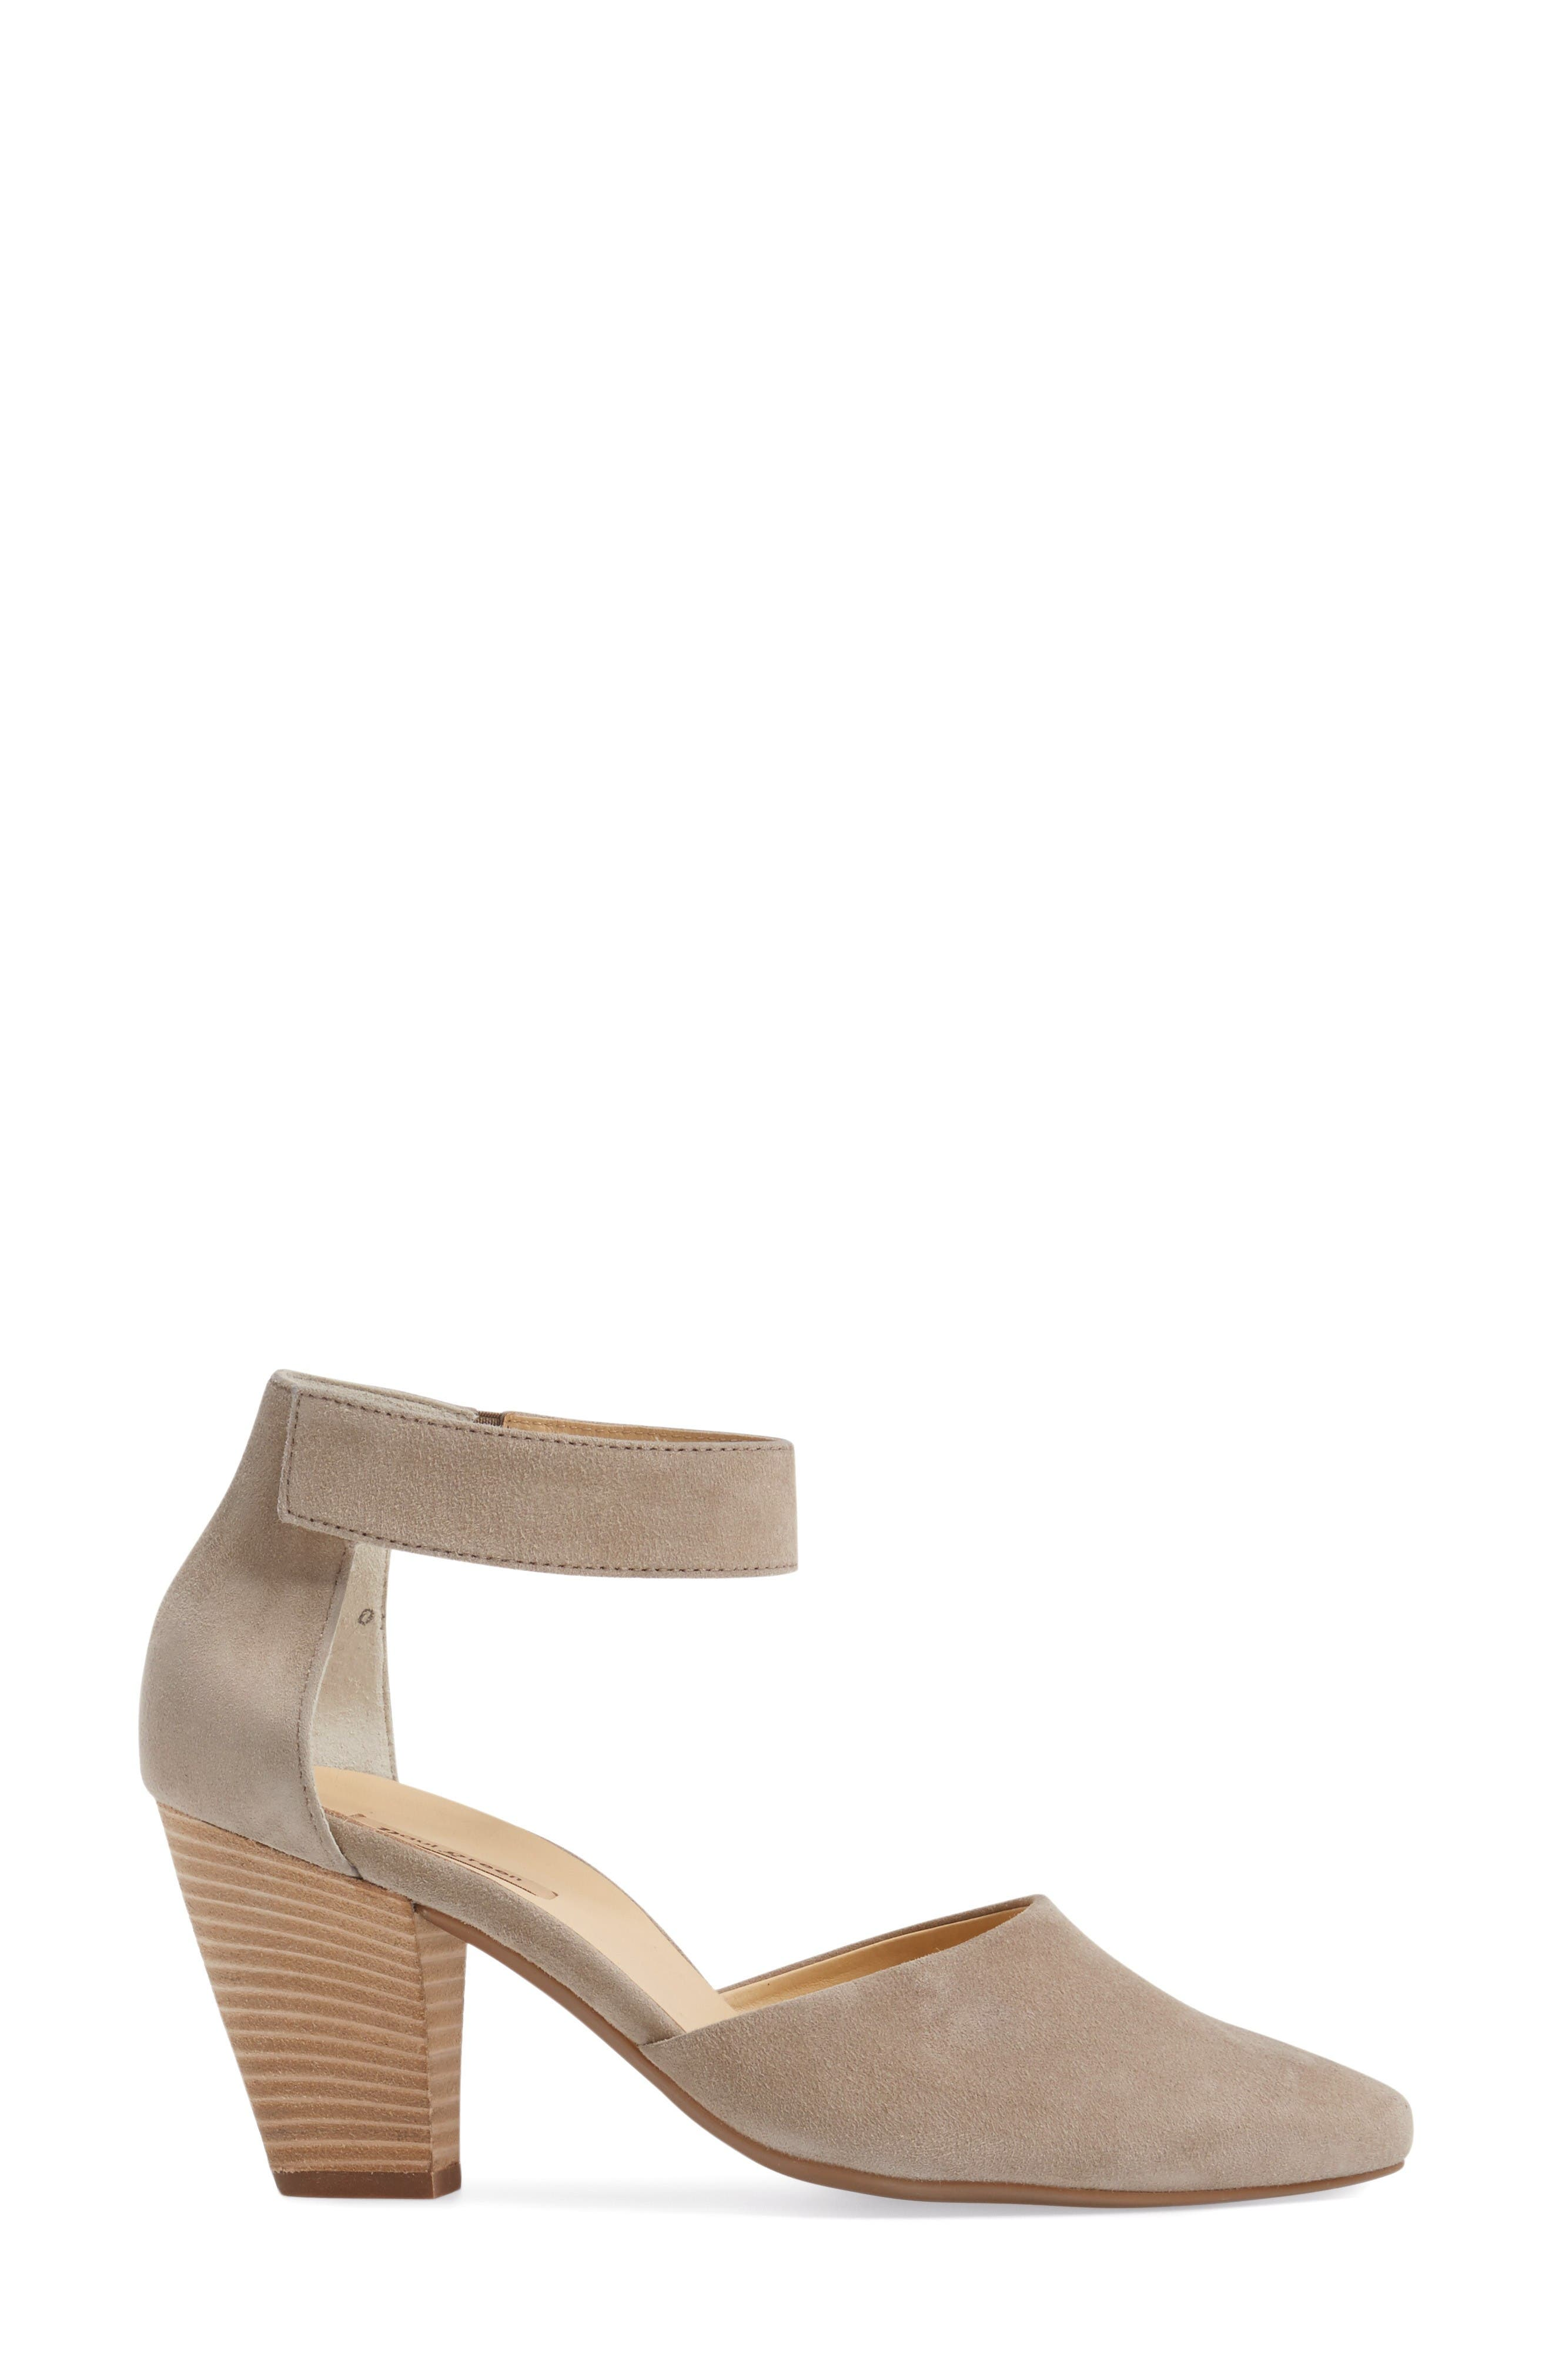 Noreen Pump,                             Alternate thumbnail 3, color,                             Taupe Suede